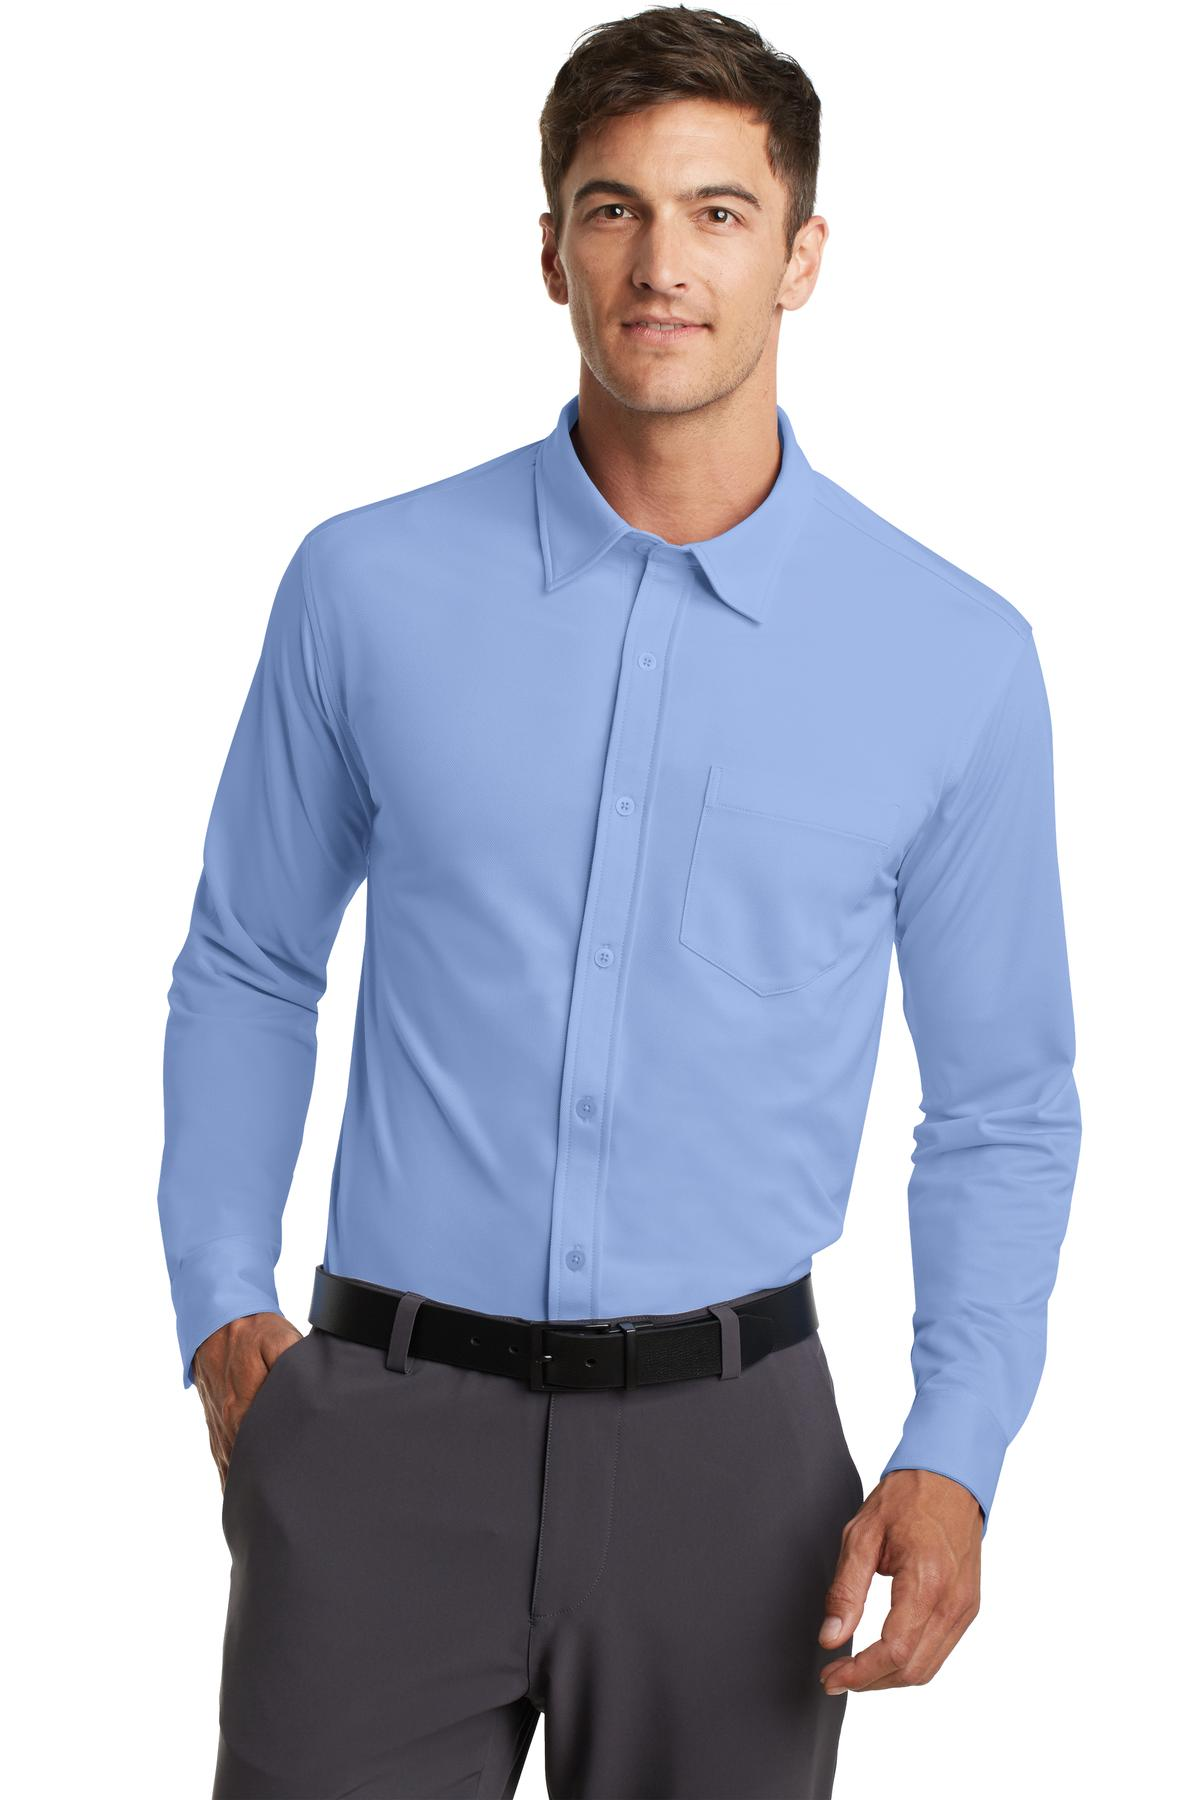 Port Authority Dimension Knit Dress Shirt. K570